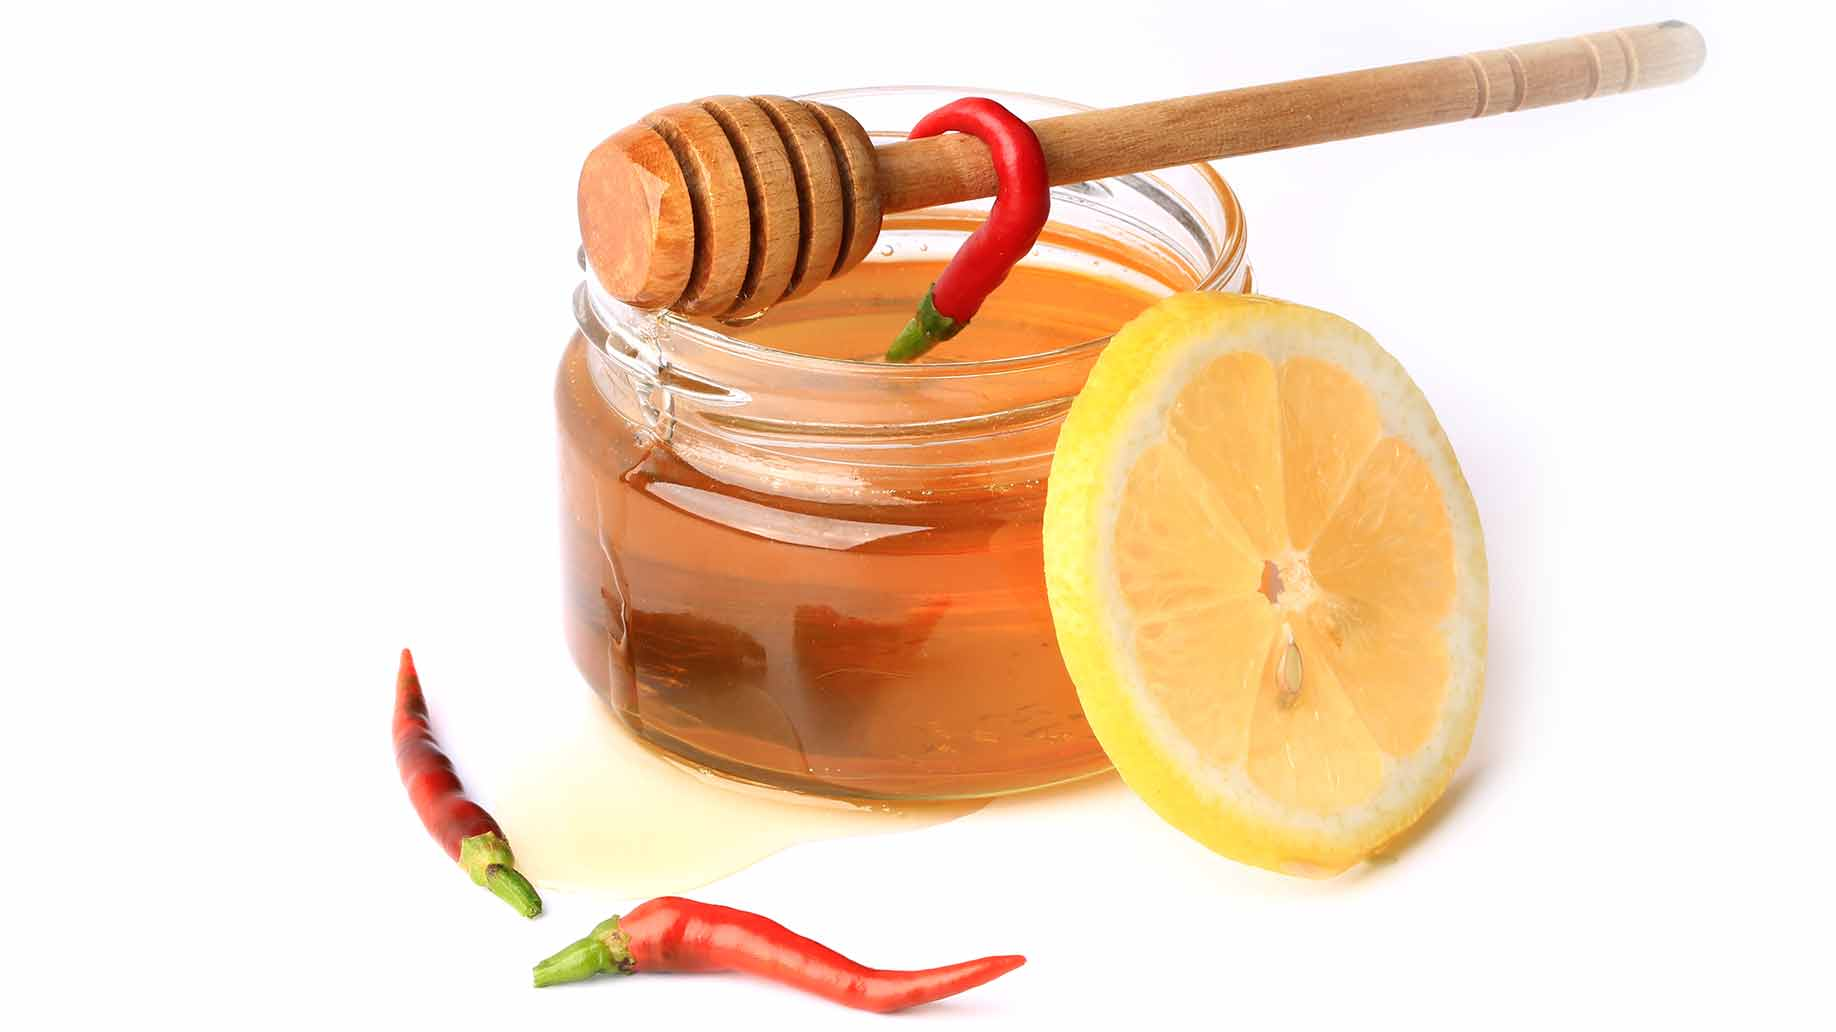 colon cleanse detox diy lemon cayenne pepper honey drink remove toxins naturally